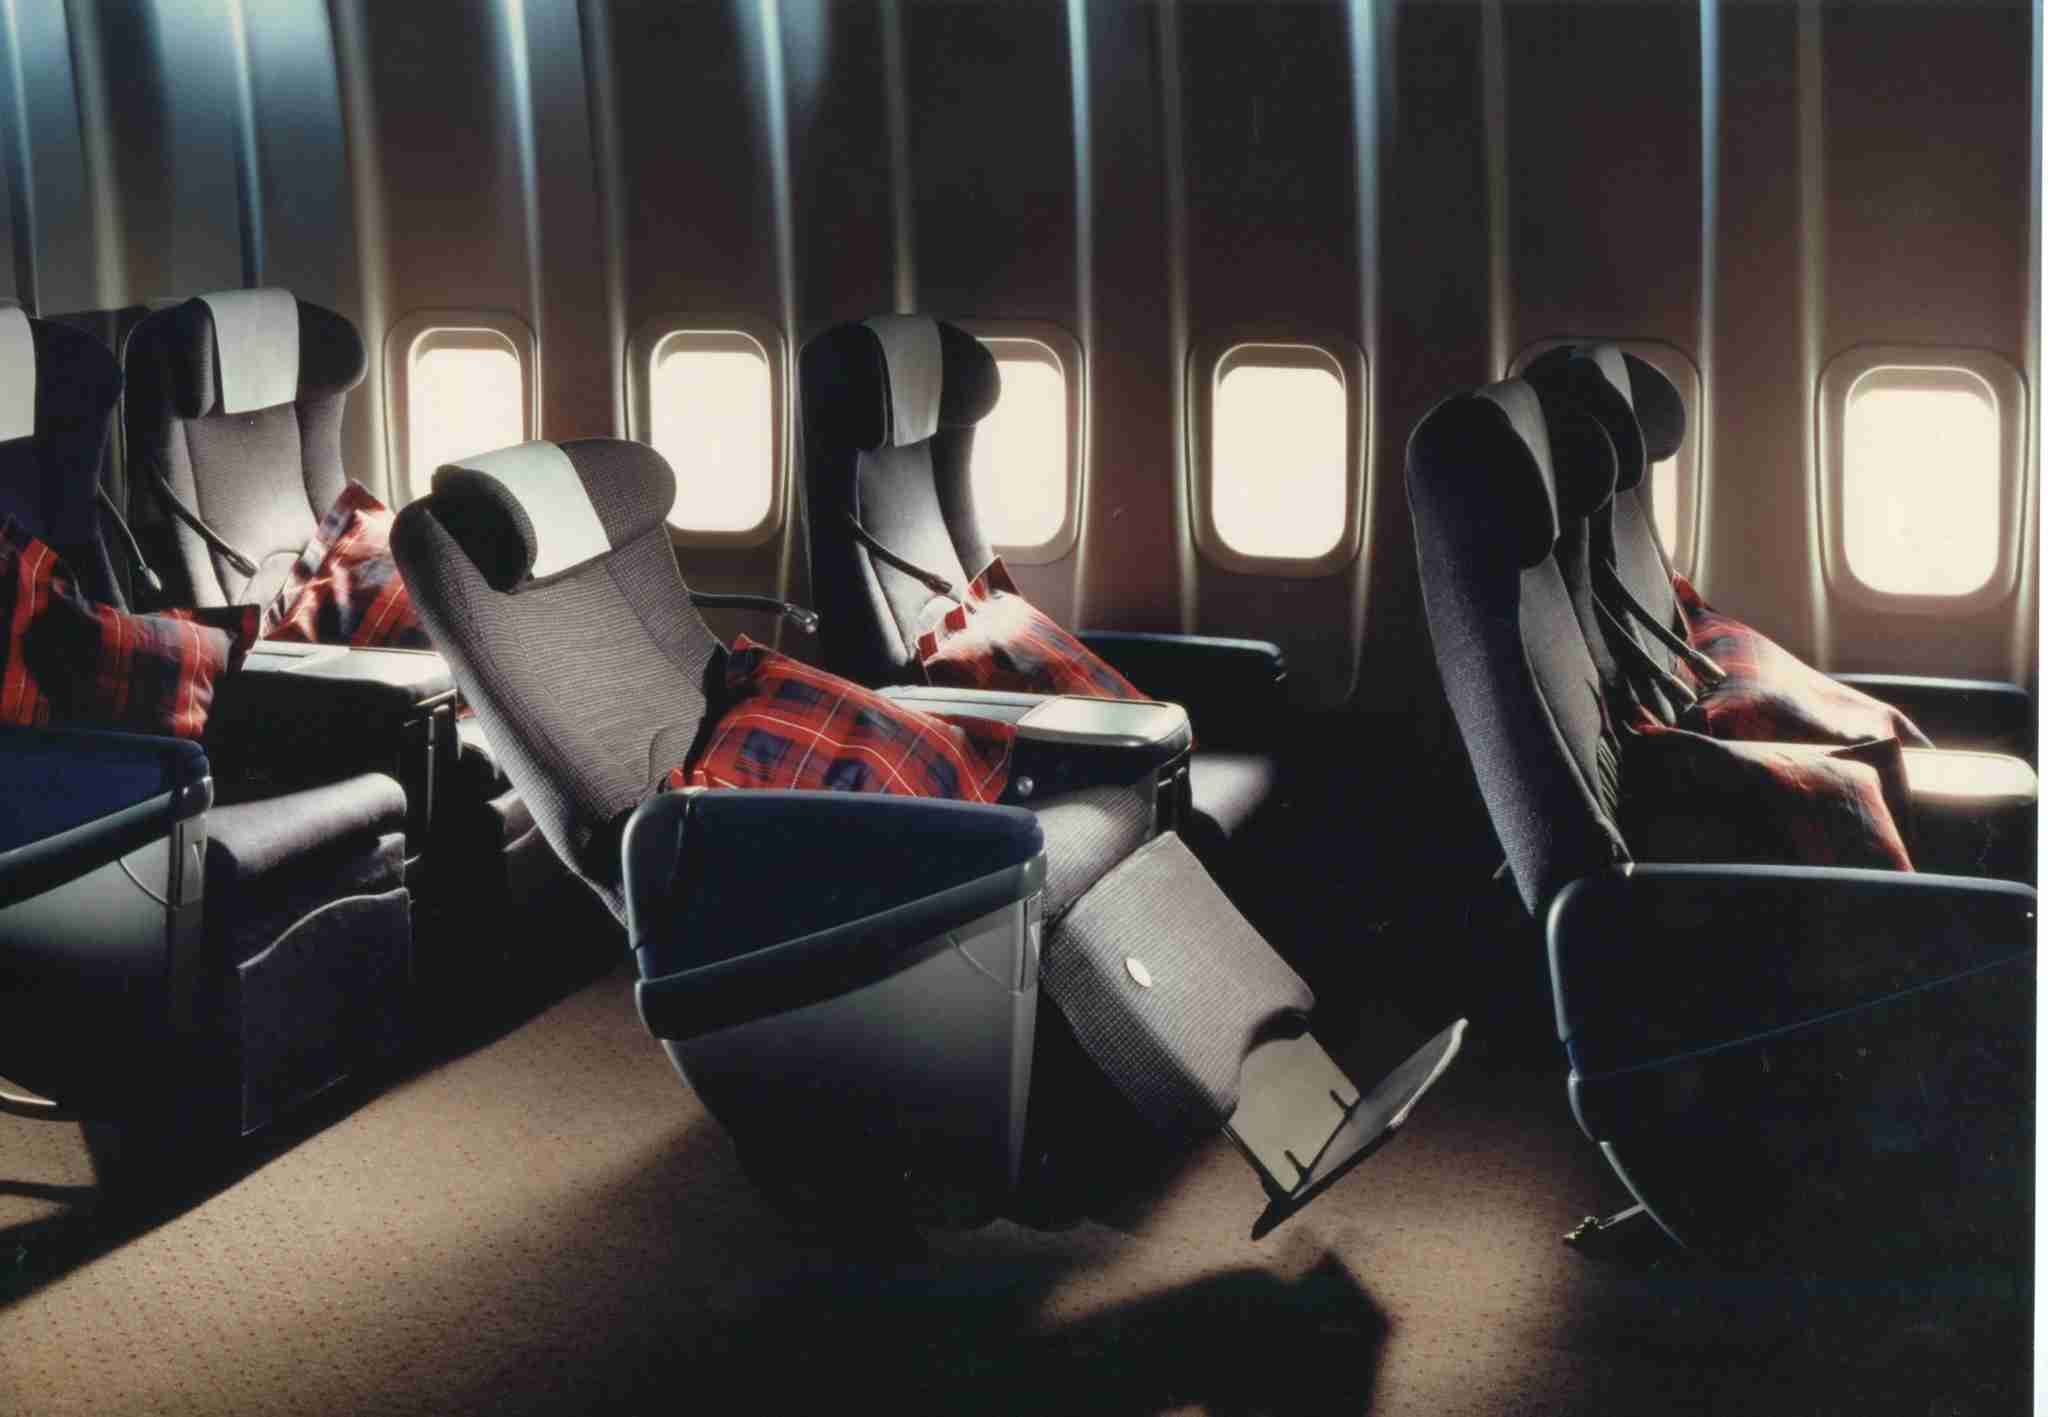 Before becoming the first airline to offer fully flat beds in business class, British Airways transported business passengers in Club World cradle seats, replete with adjustable footrests and headrests. Image courtesy of British Airways.